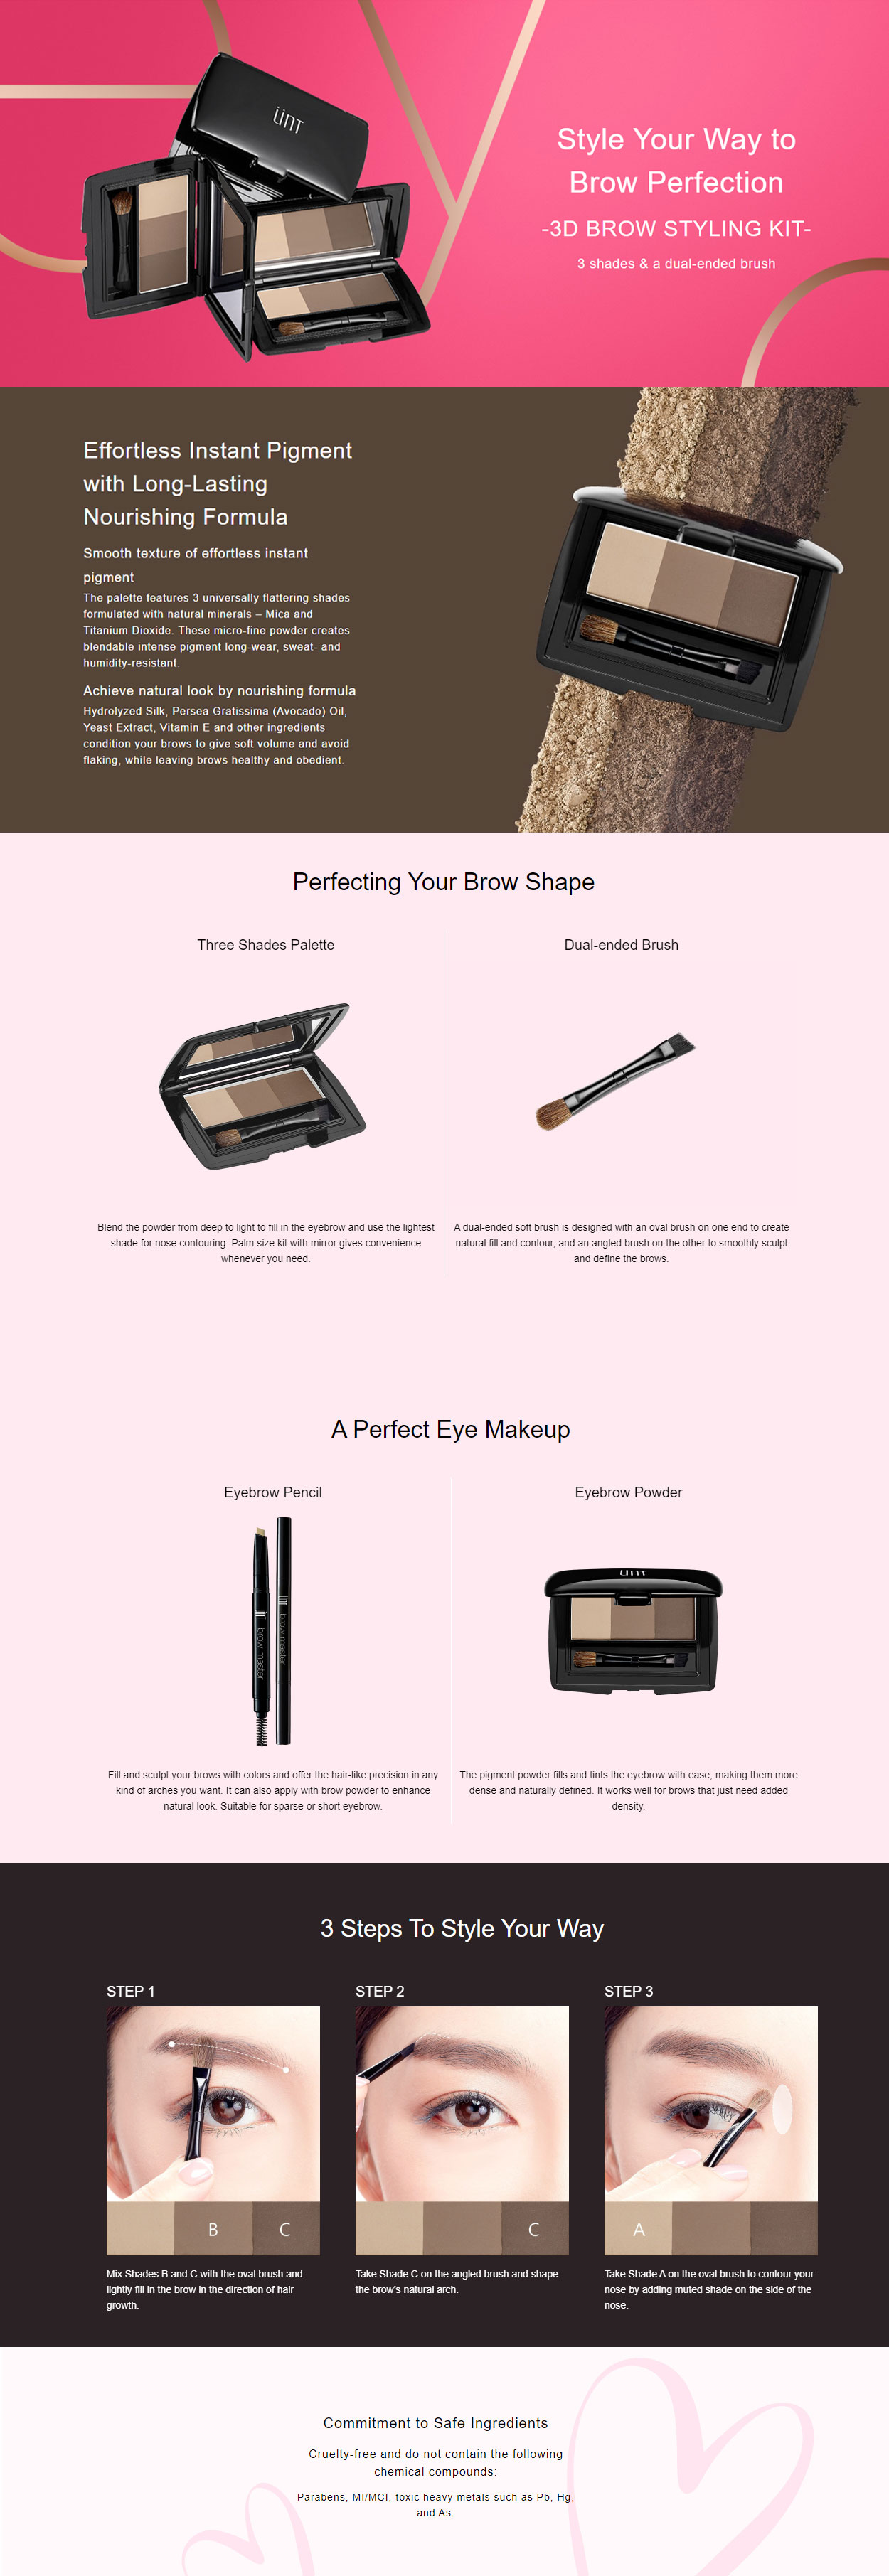 3D Brows Styling Kit -Intro